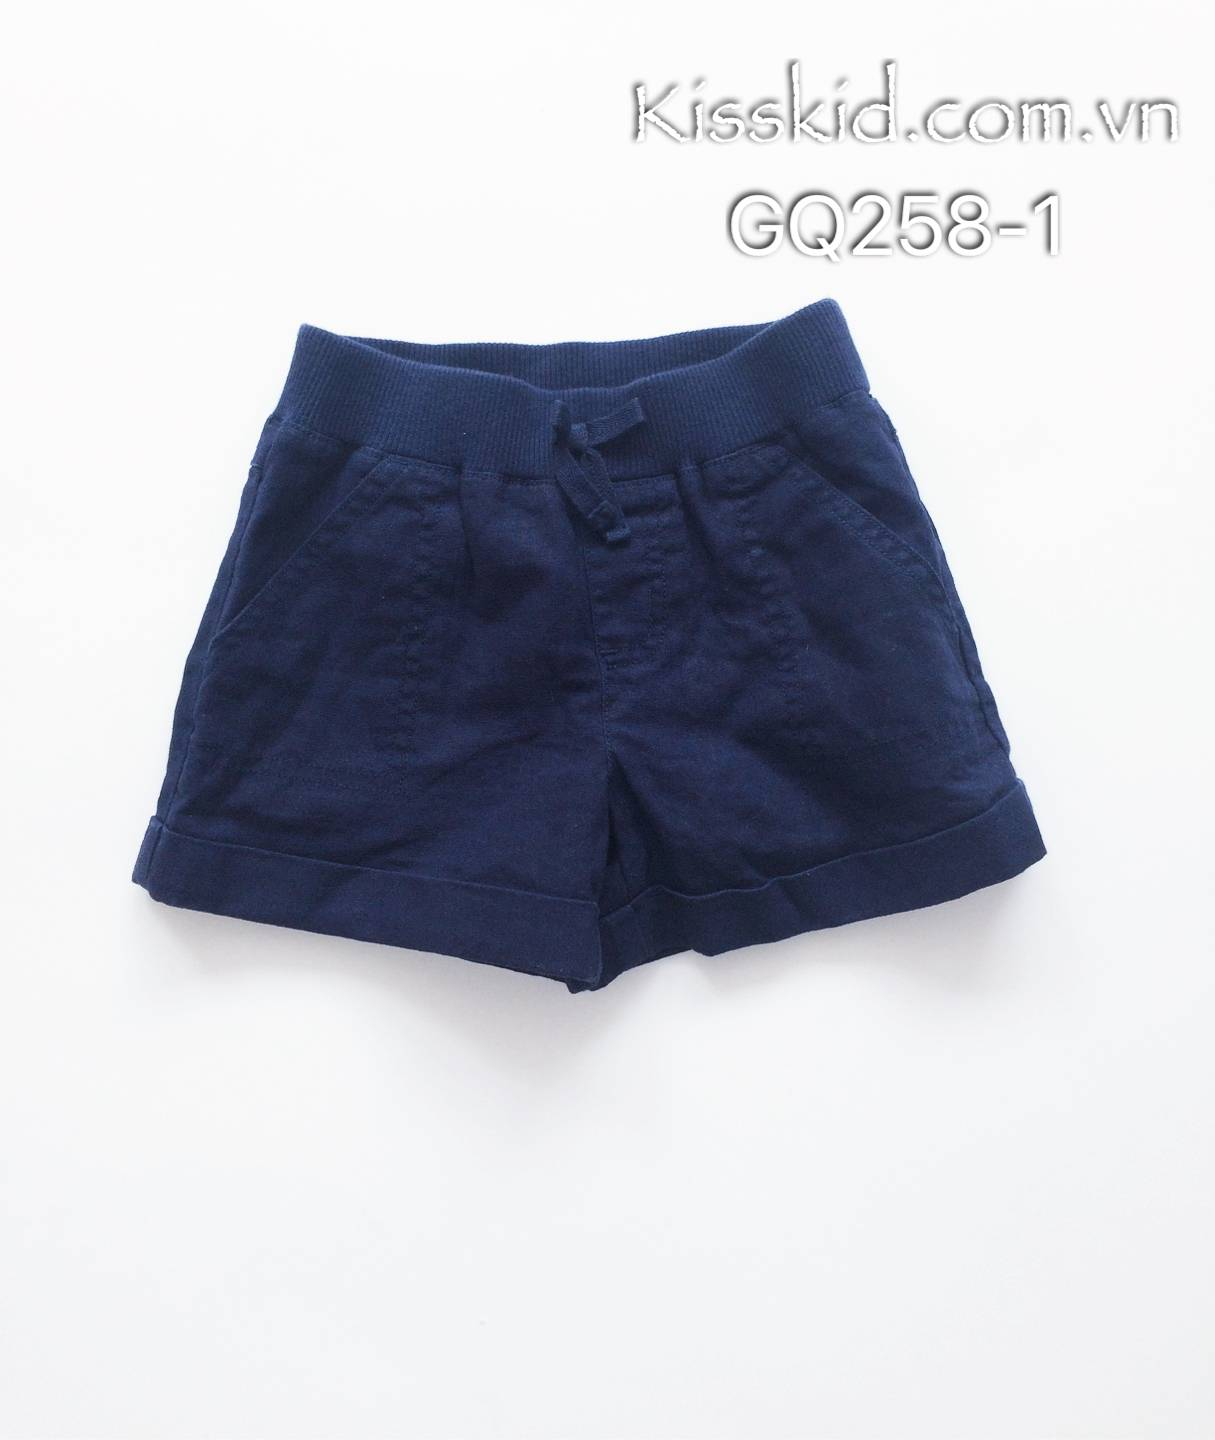 Quần short BG Gymboree màu tím than